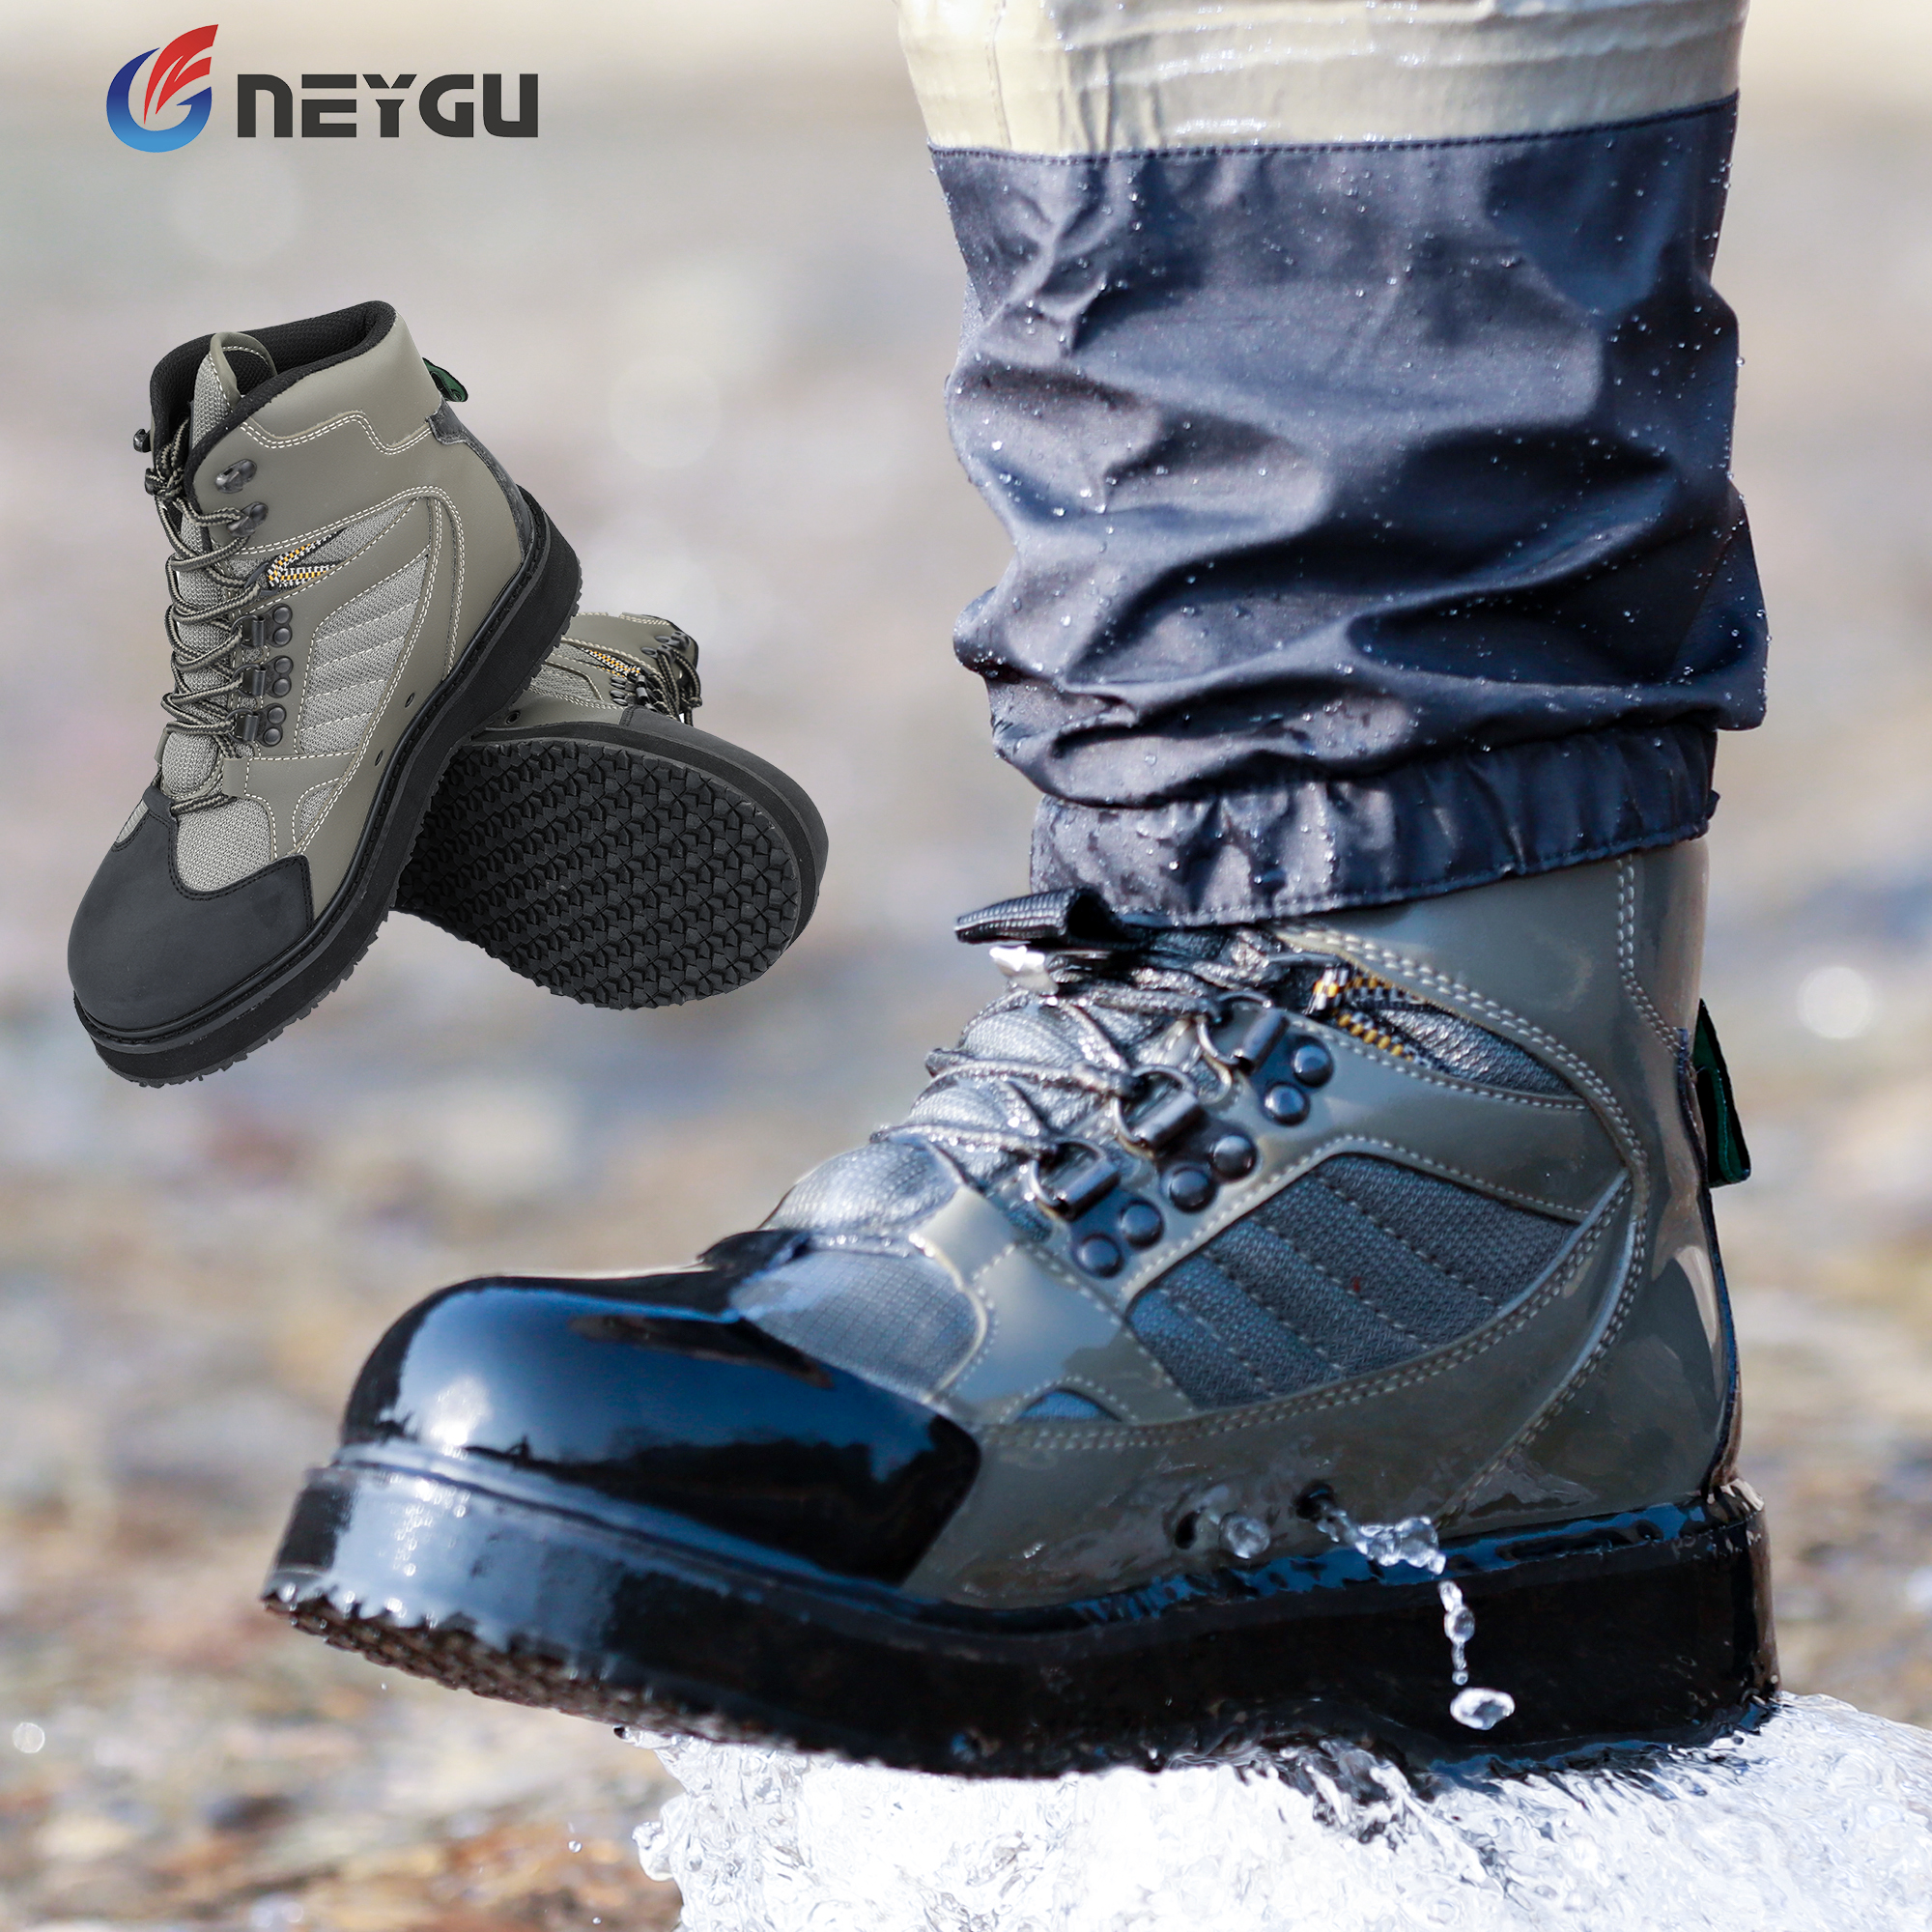 Neygu Breathable Upstream Shoes,Aqua Upstream Sneakers, Walking Upstream Water Boots For Outdoor Sports, Hiking Wading &fishing